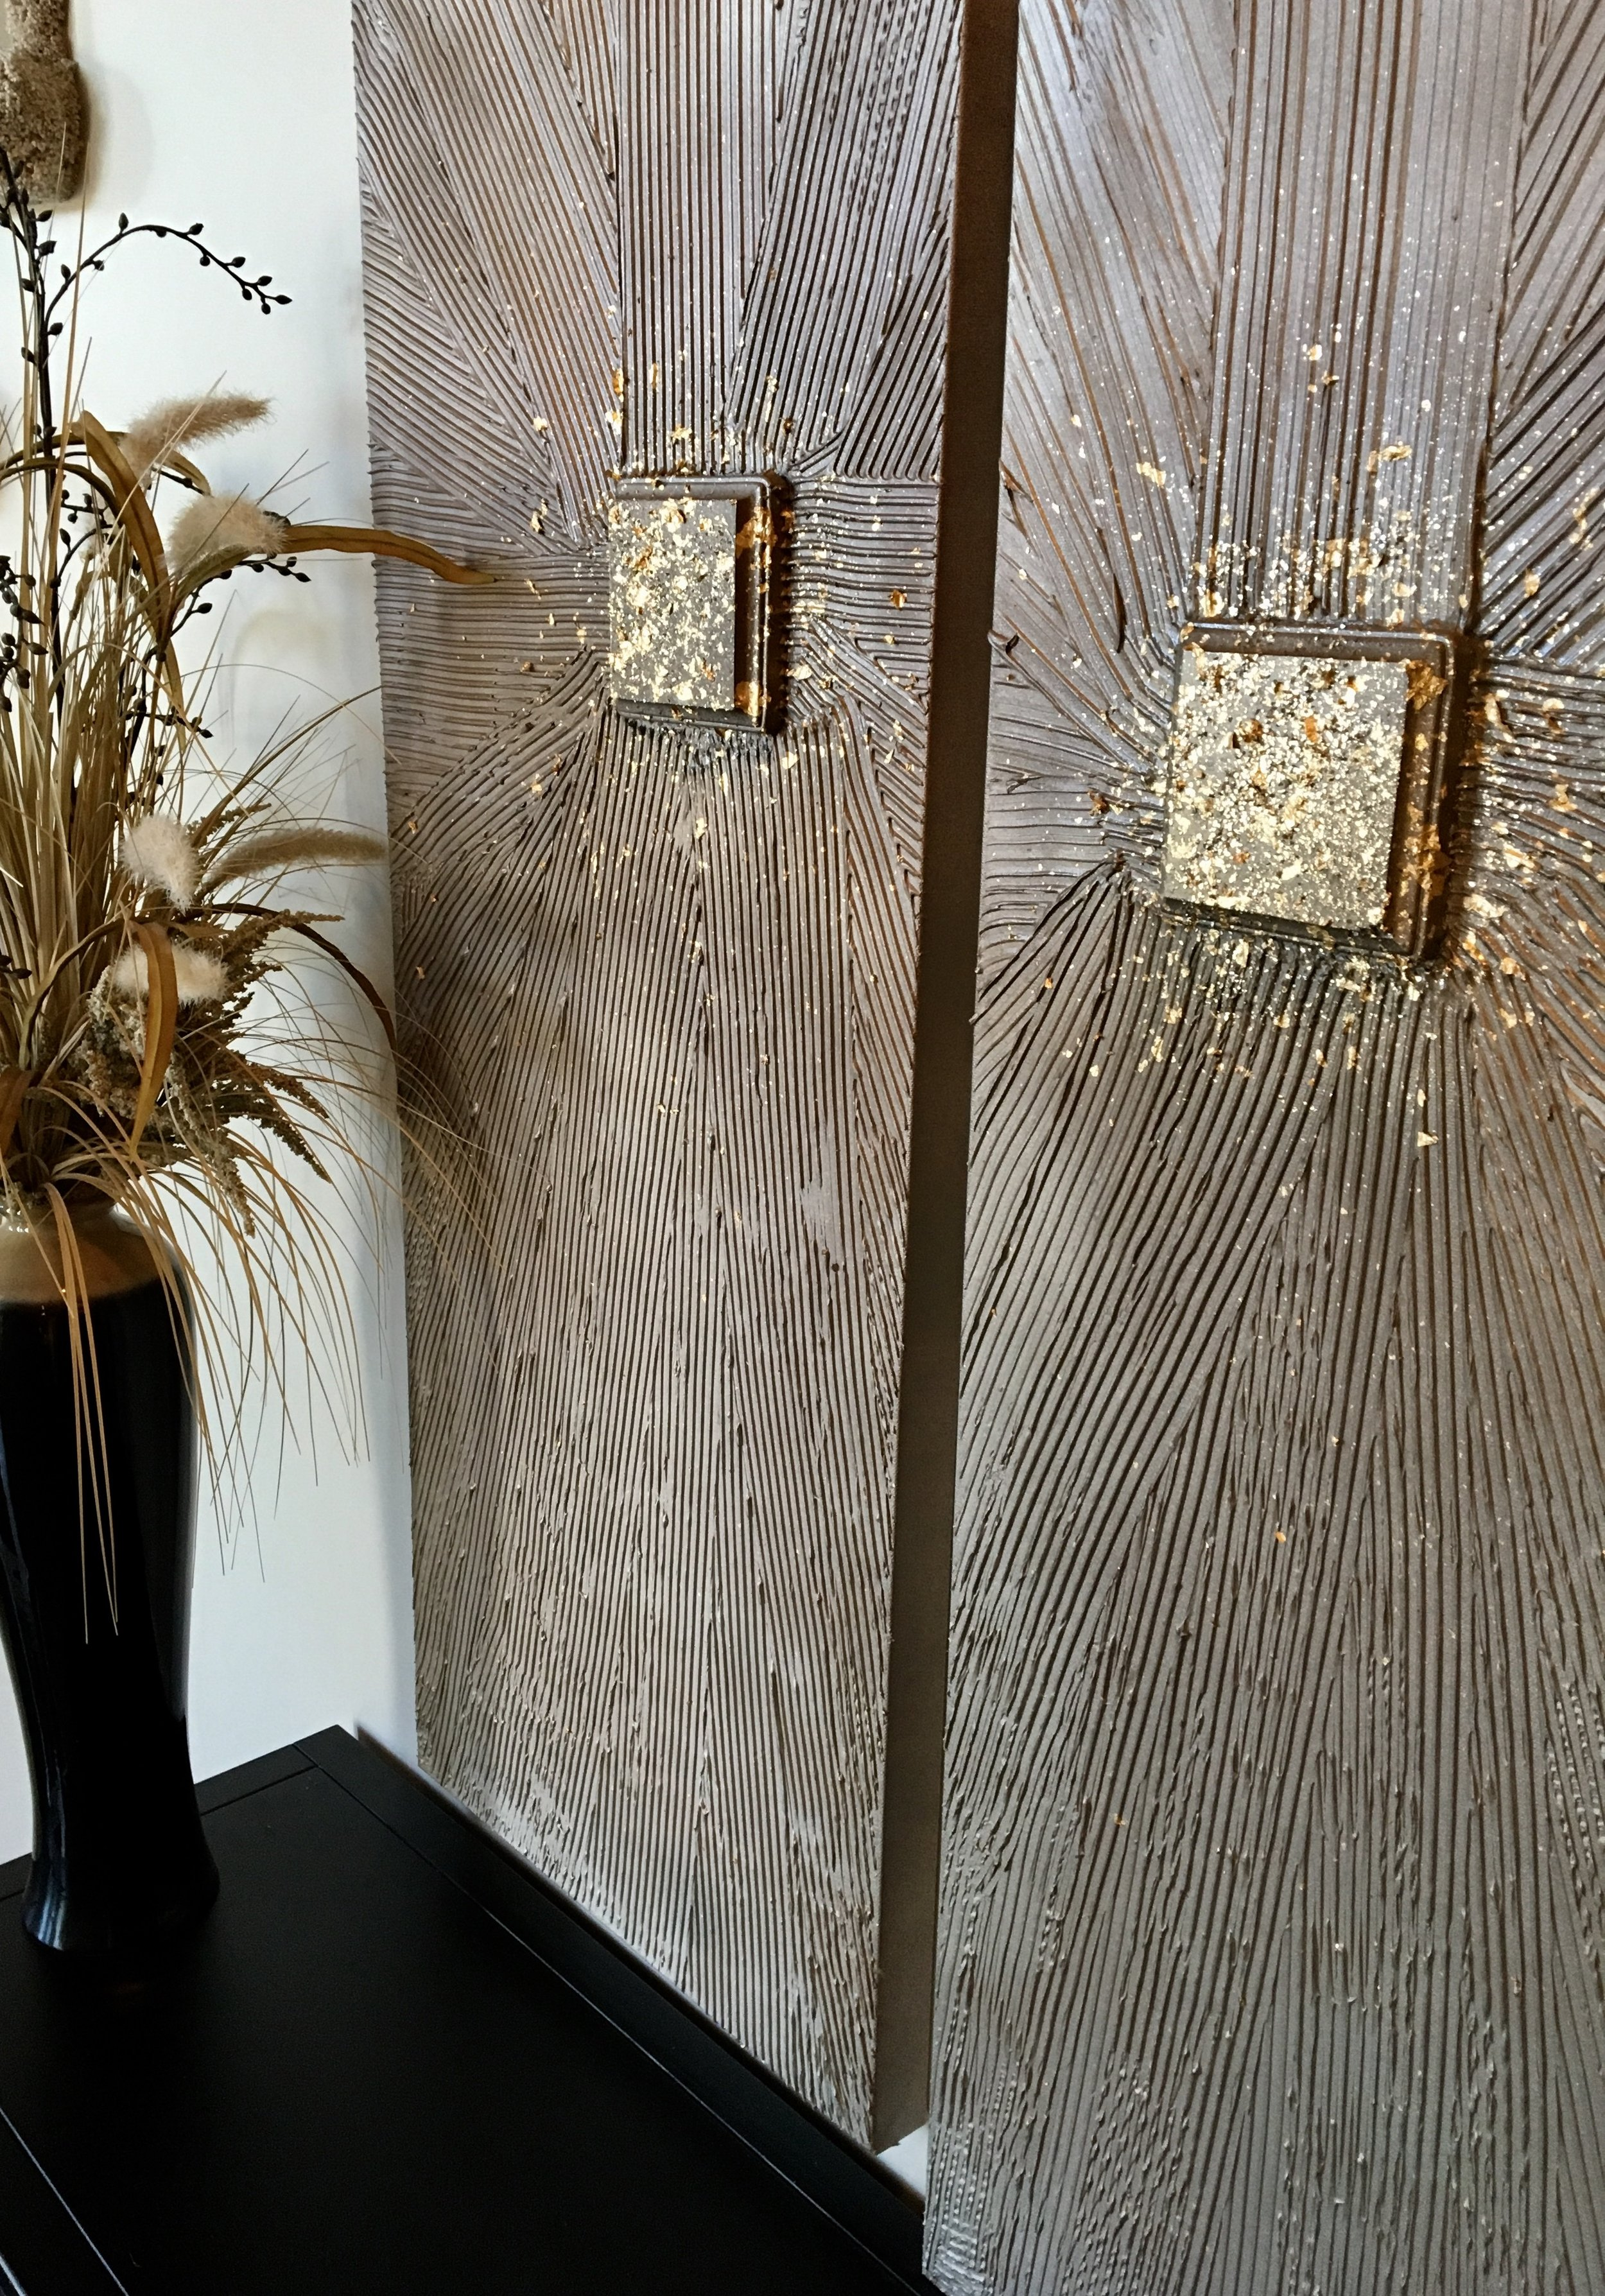 'Golden Buckle' has a background in bronze tones with a buckle in gold  and lots of sparkle. shown in two 16x40.